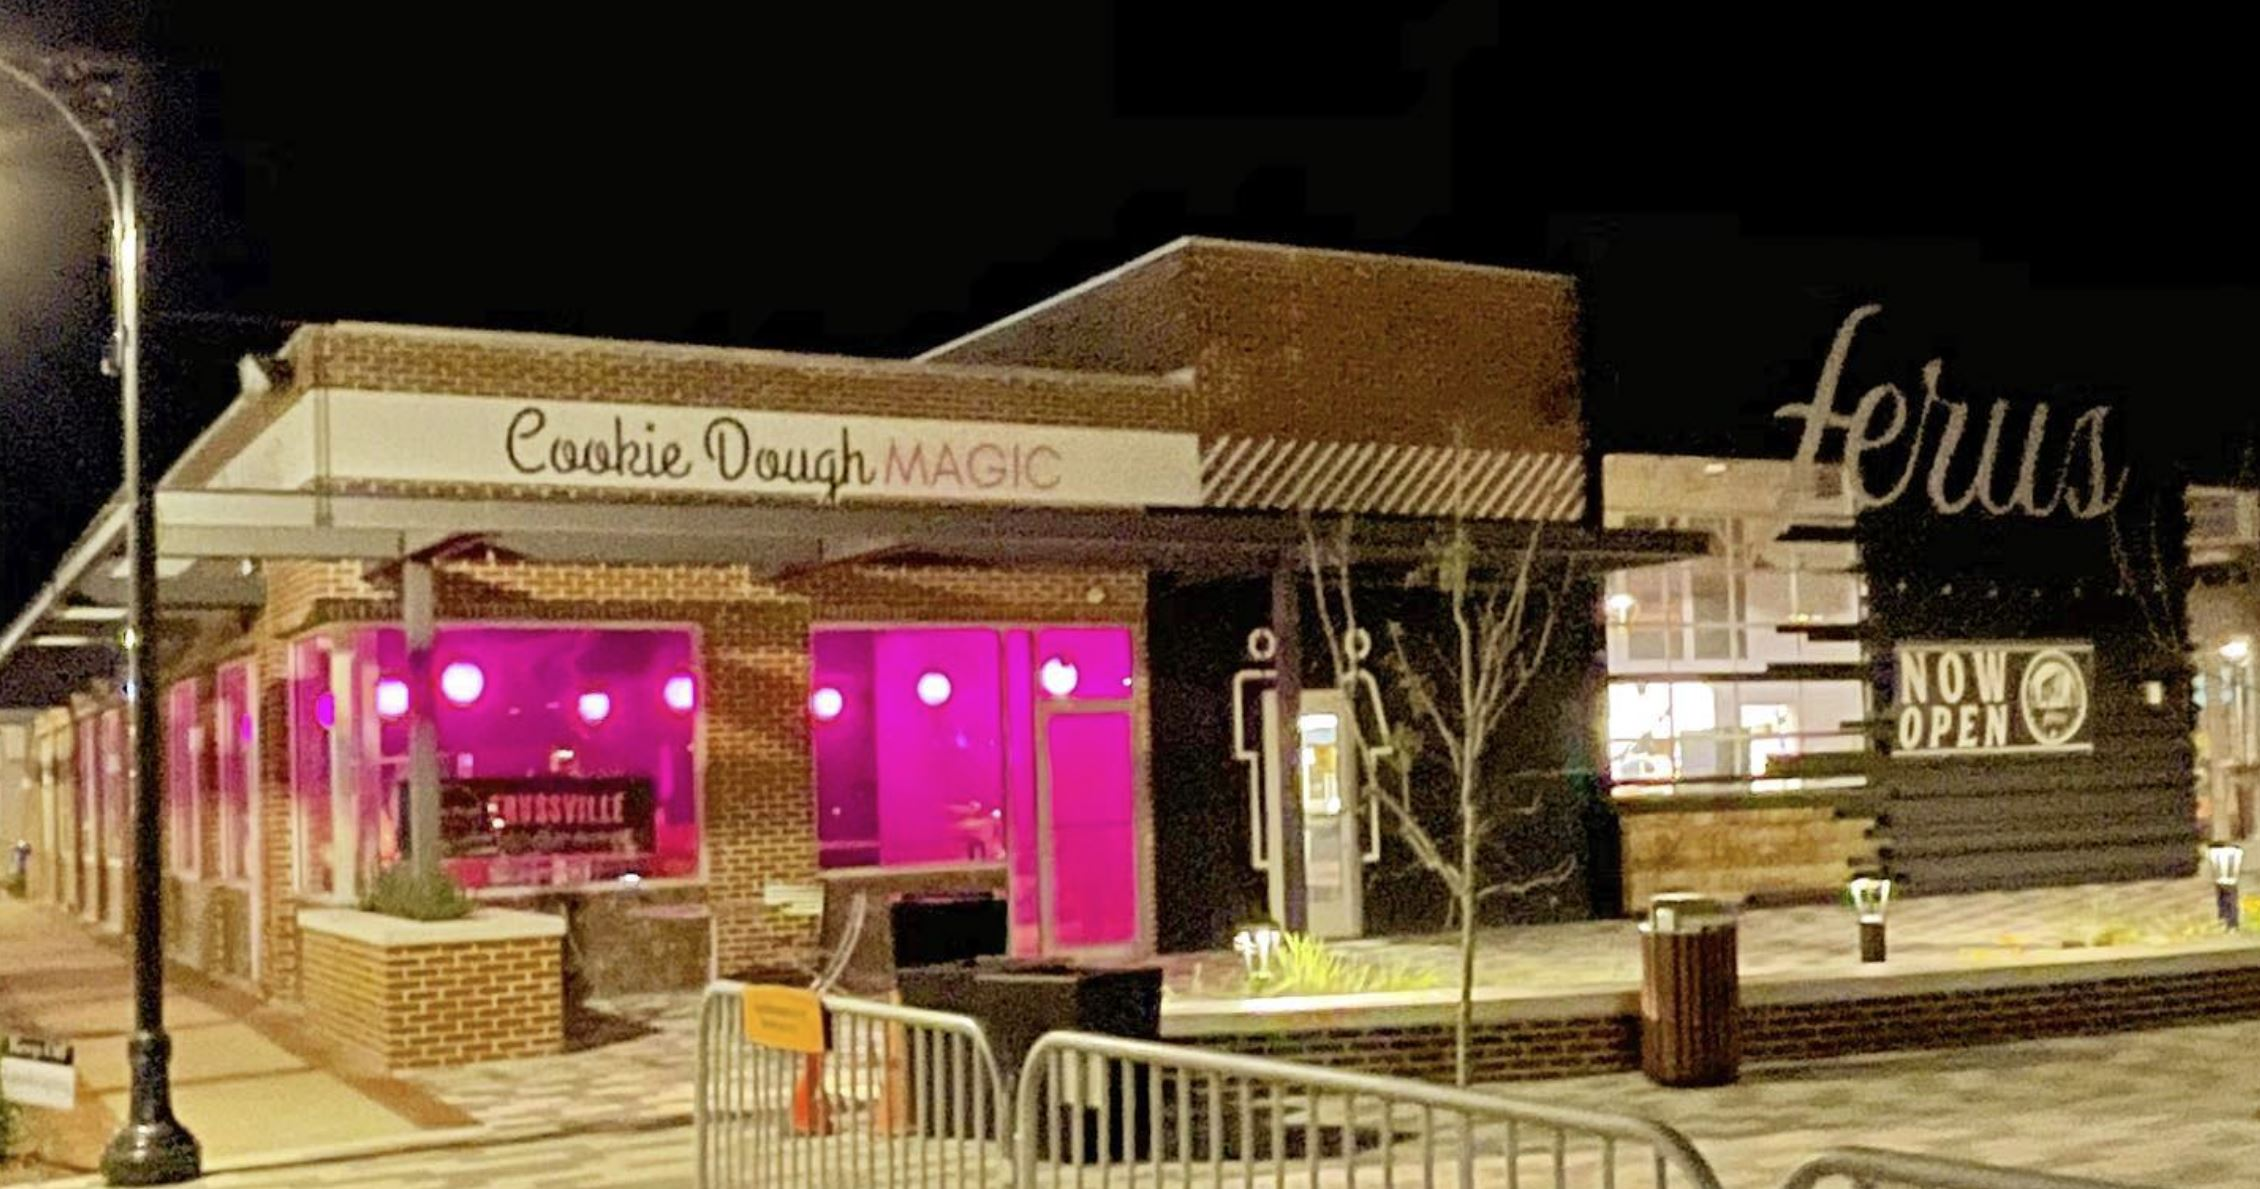 Cookie Dough Magic to open soon in Trussville Entertainment District